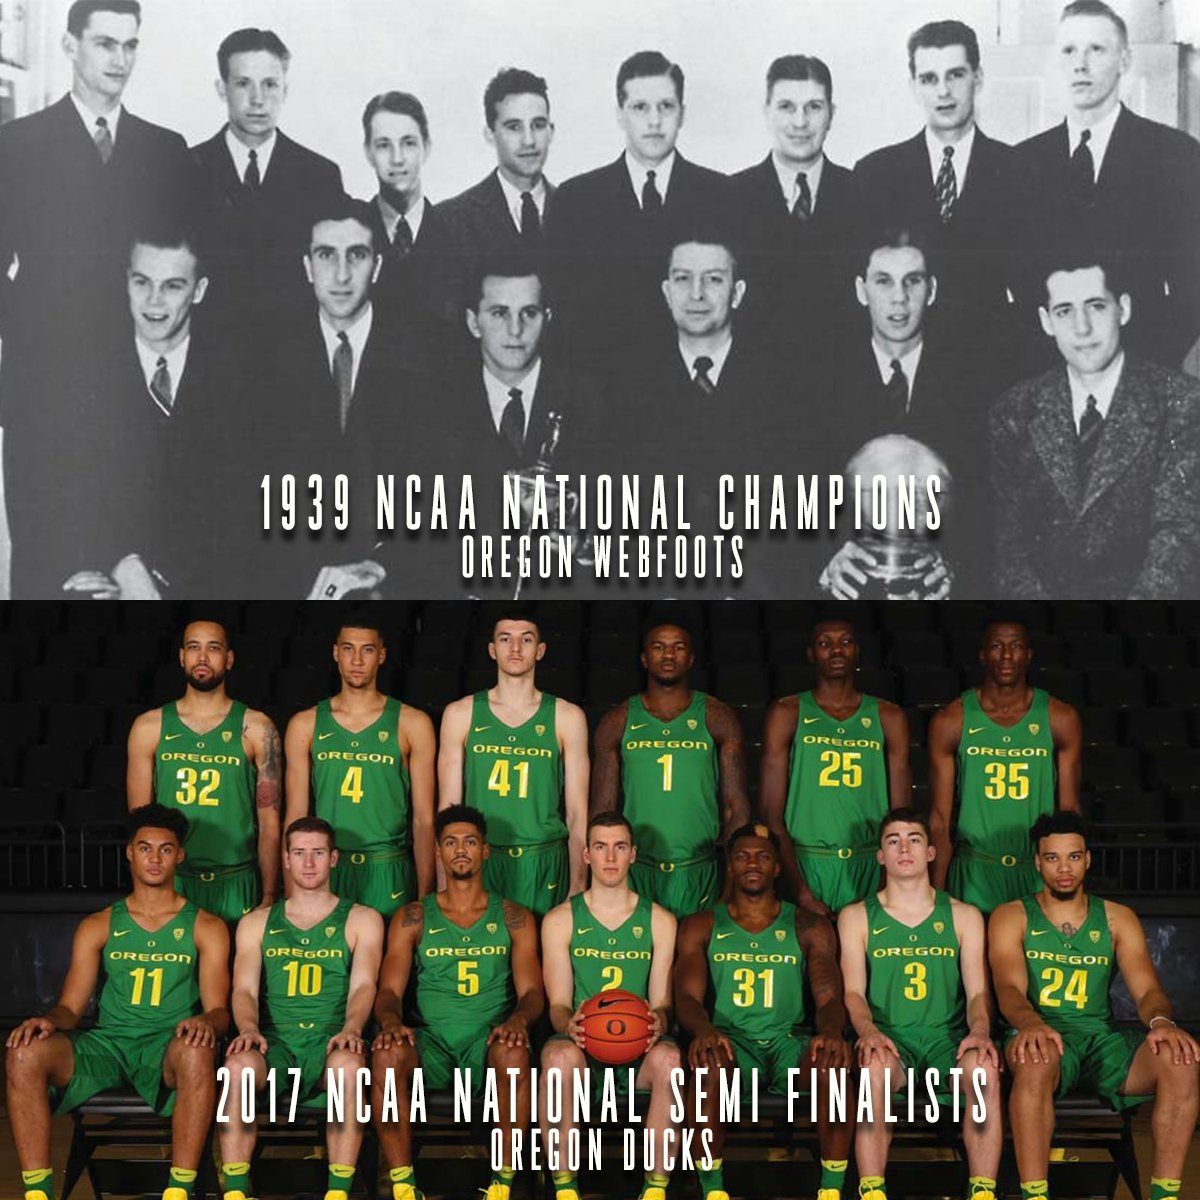 The 78-year wait is over! #FinalFour #GoDucks https://t.co/24ojukf30n